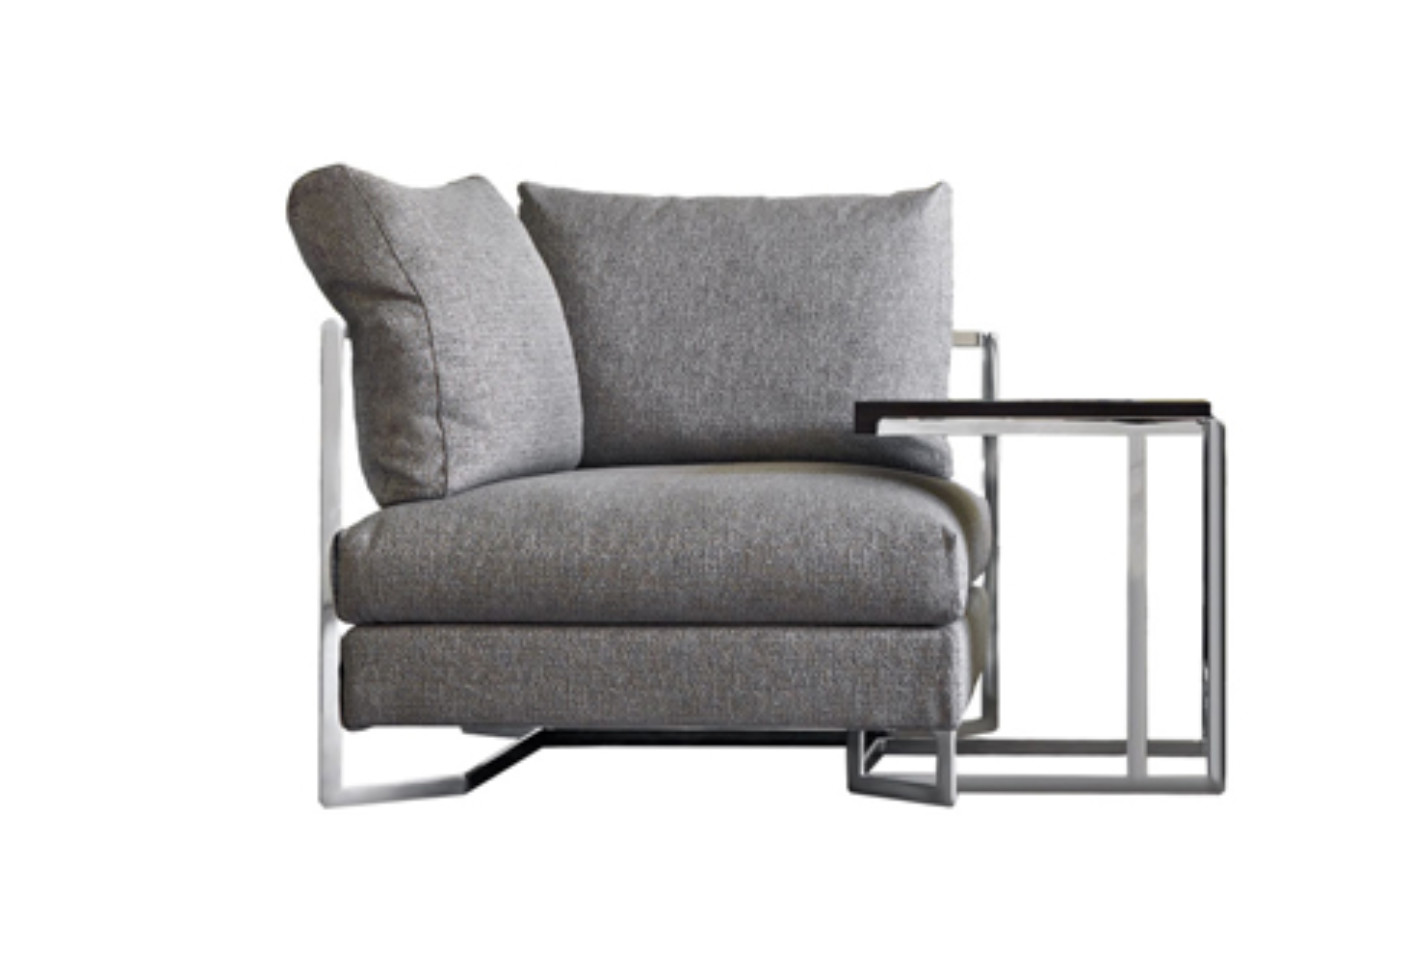 Large armchair by Molteni & C | STYLEPARK